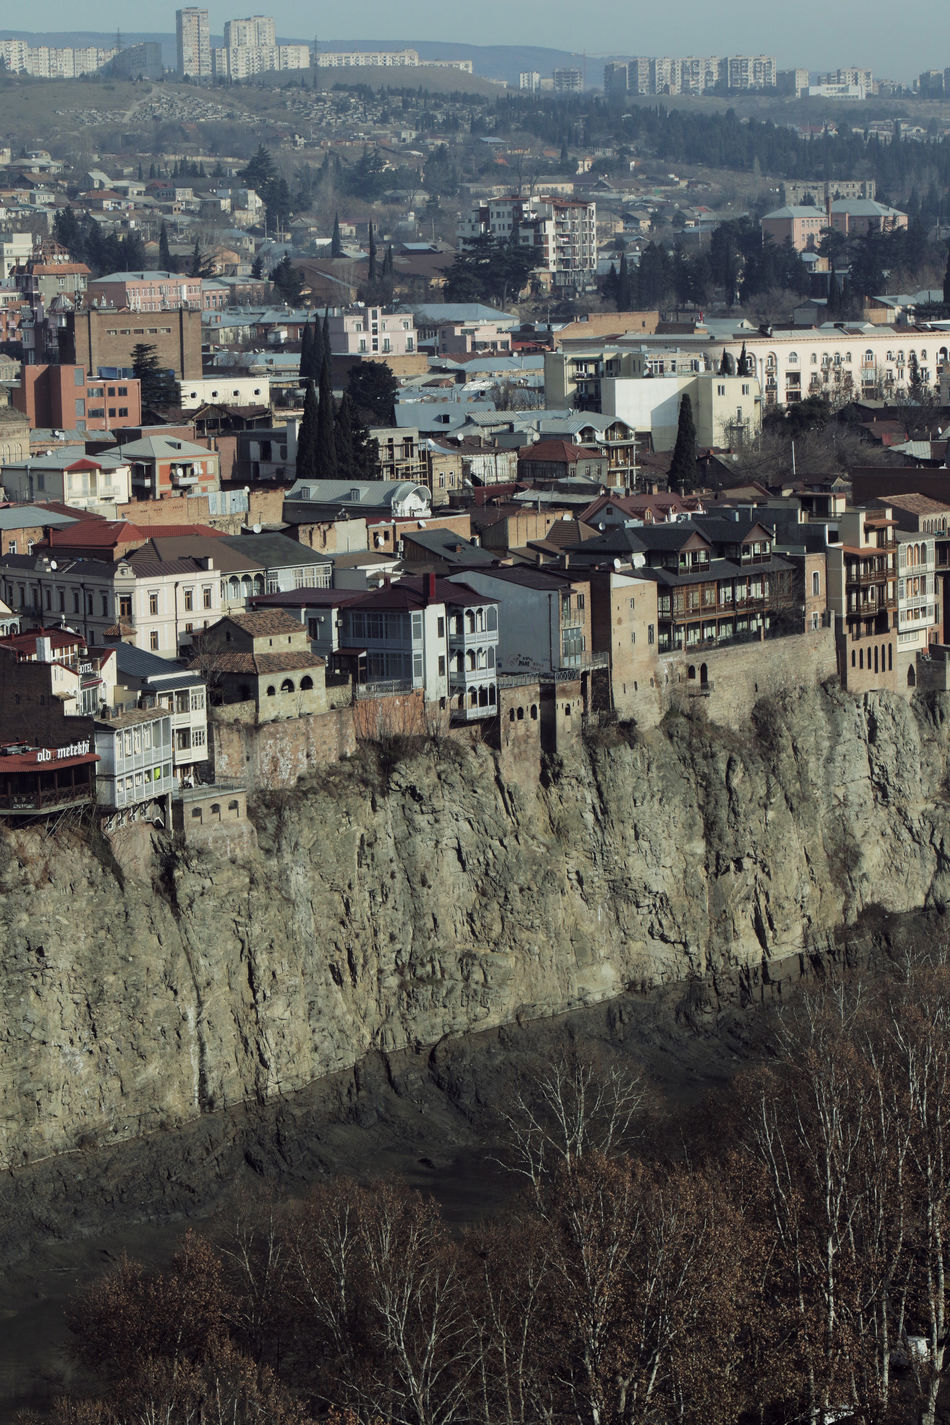 Tbilisi, Georgia Architecture Building Exterior Built Structure City Cityscape Crowded Day Dense Living Hillside View Neighborhood Old City Outdoors People Residential Building Sky Flying High